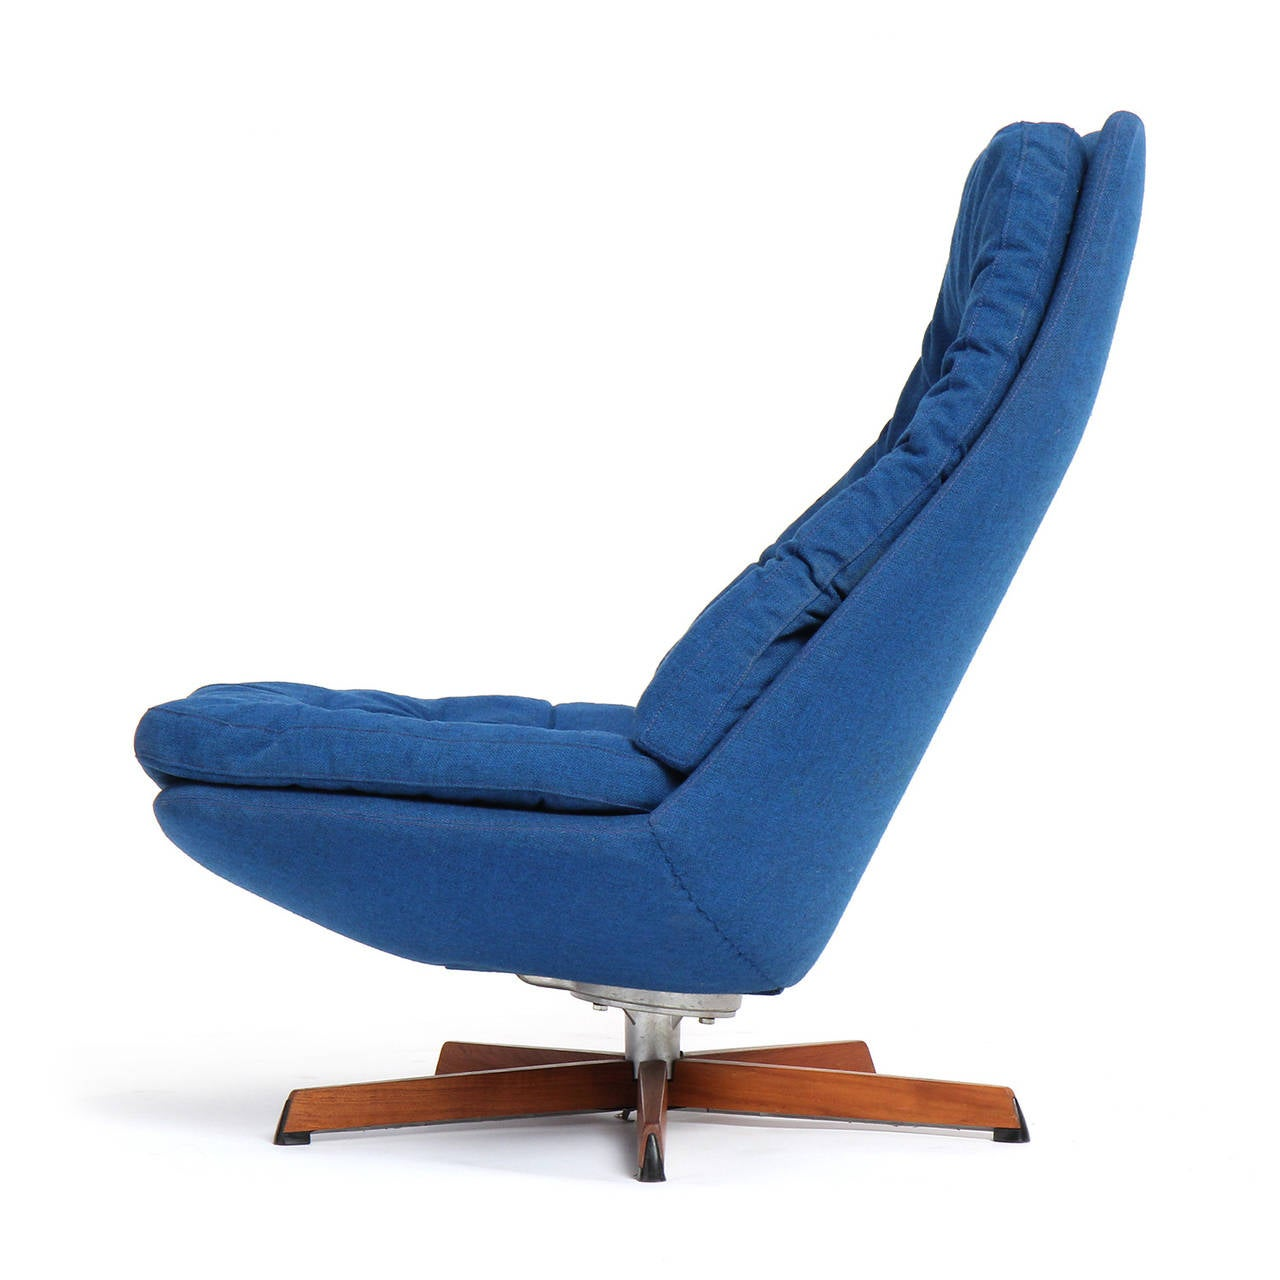 A sculptural low slung swiveling button tufted lounge chair having rich deep blue wool upholstery and floating atop a five-armed aluminum and teak base.